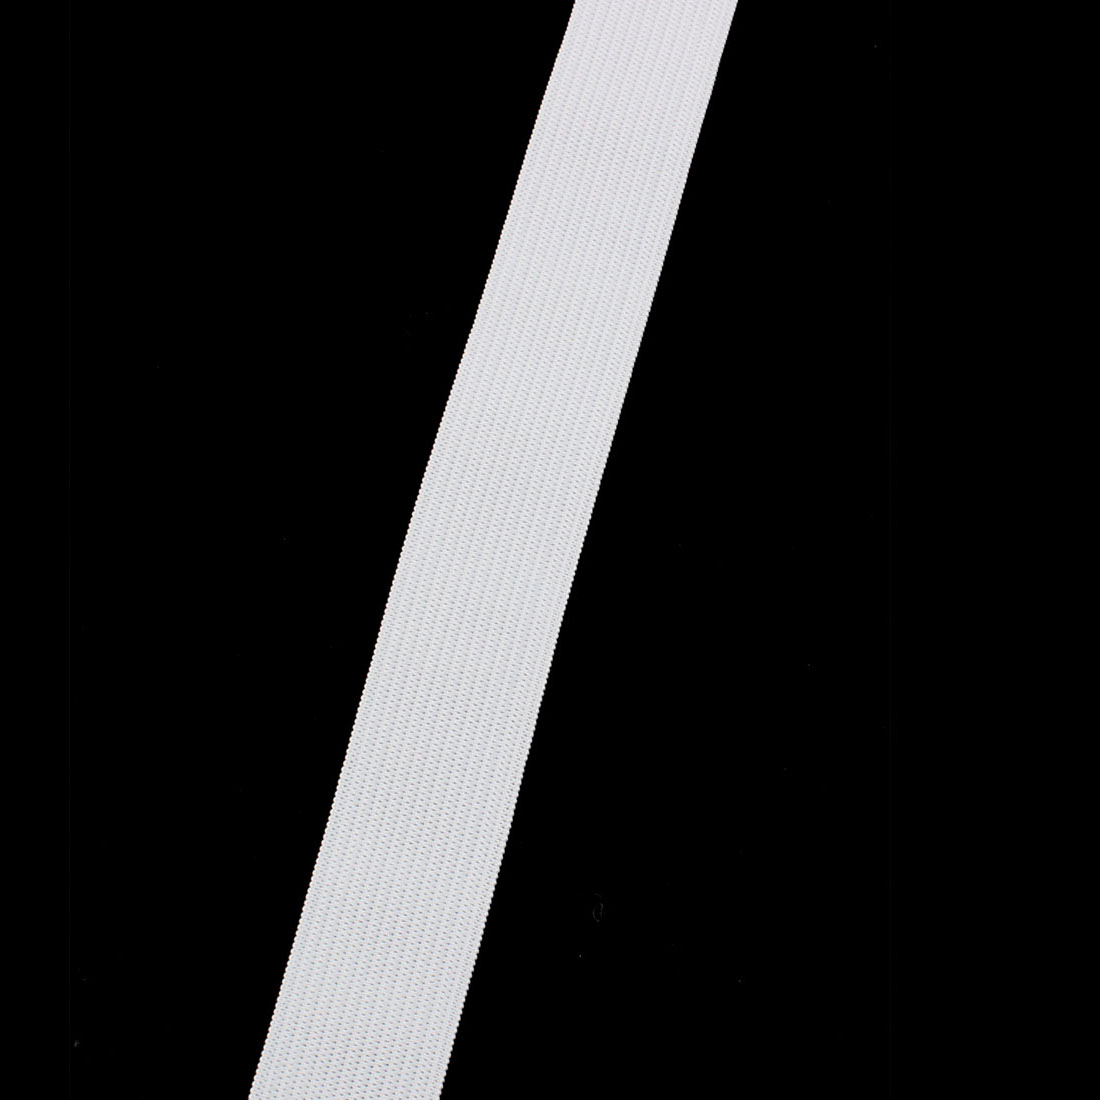 Clothes Trousers Pants Skirt Polyester Elastic Band String White 12M Length 2pcs - image 1 of 3